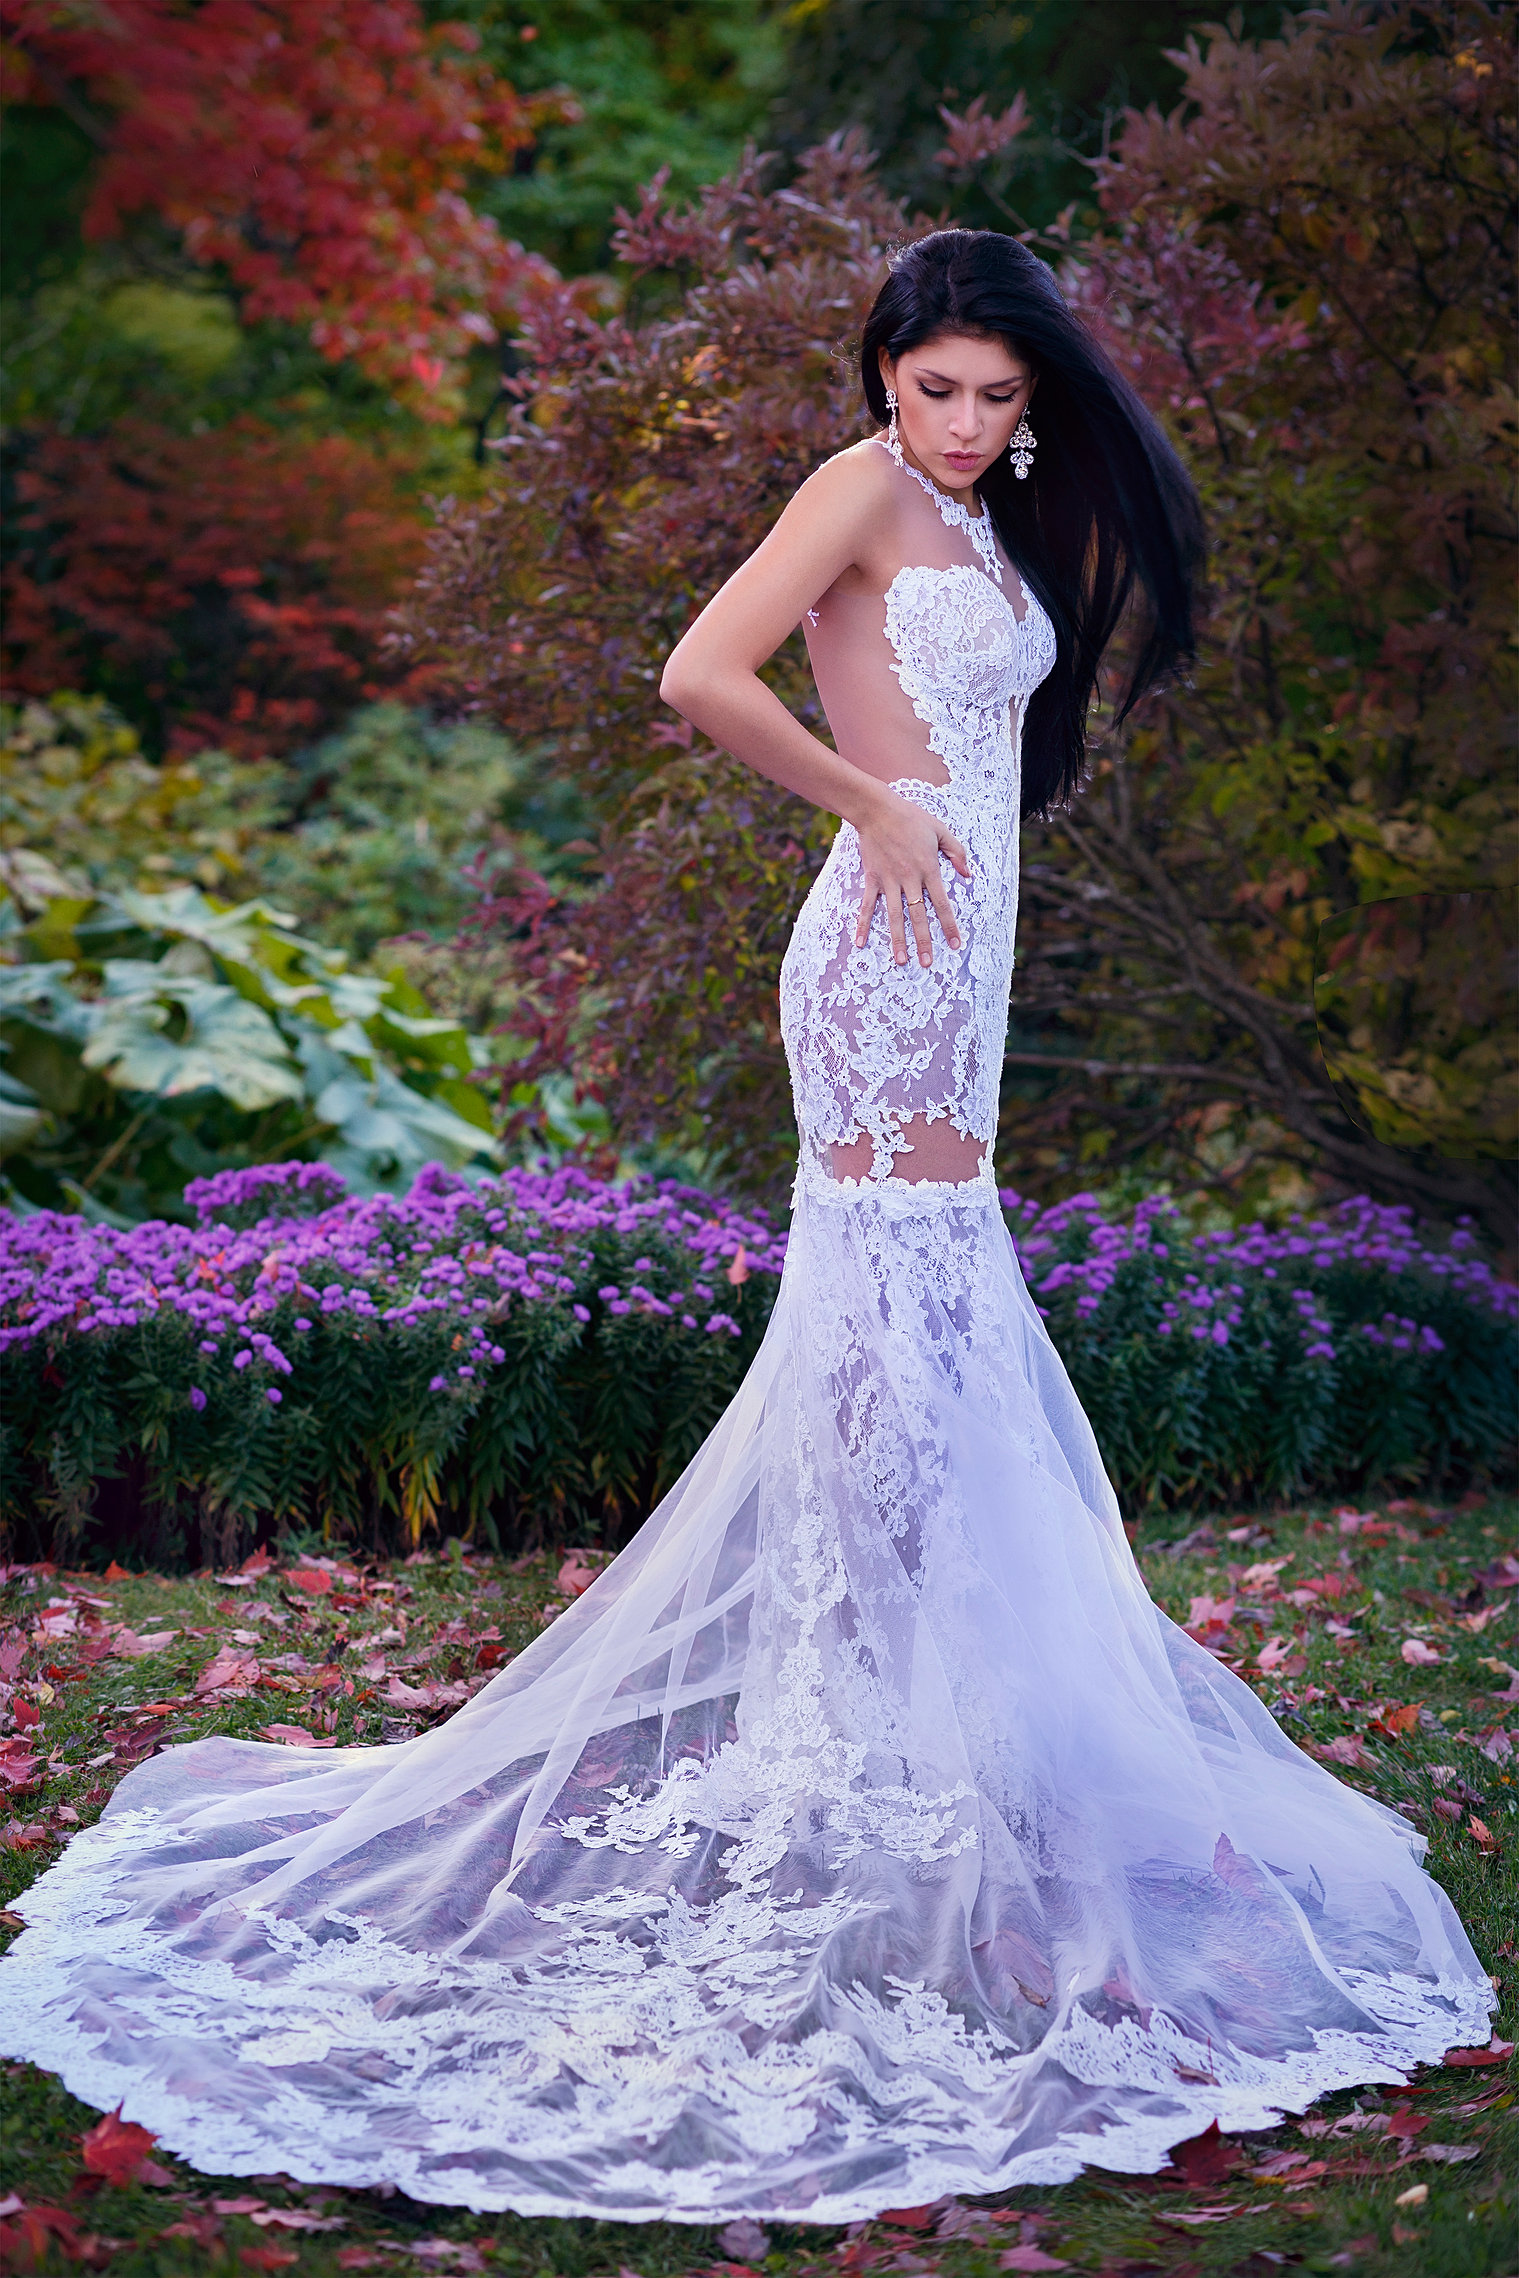 Lilia Haute Couture | Custom Made Wedding Gowns Boutique in Montreal